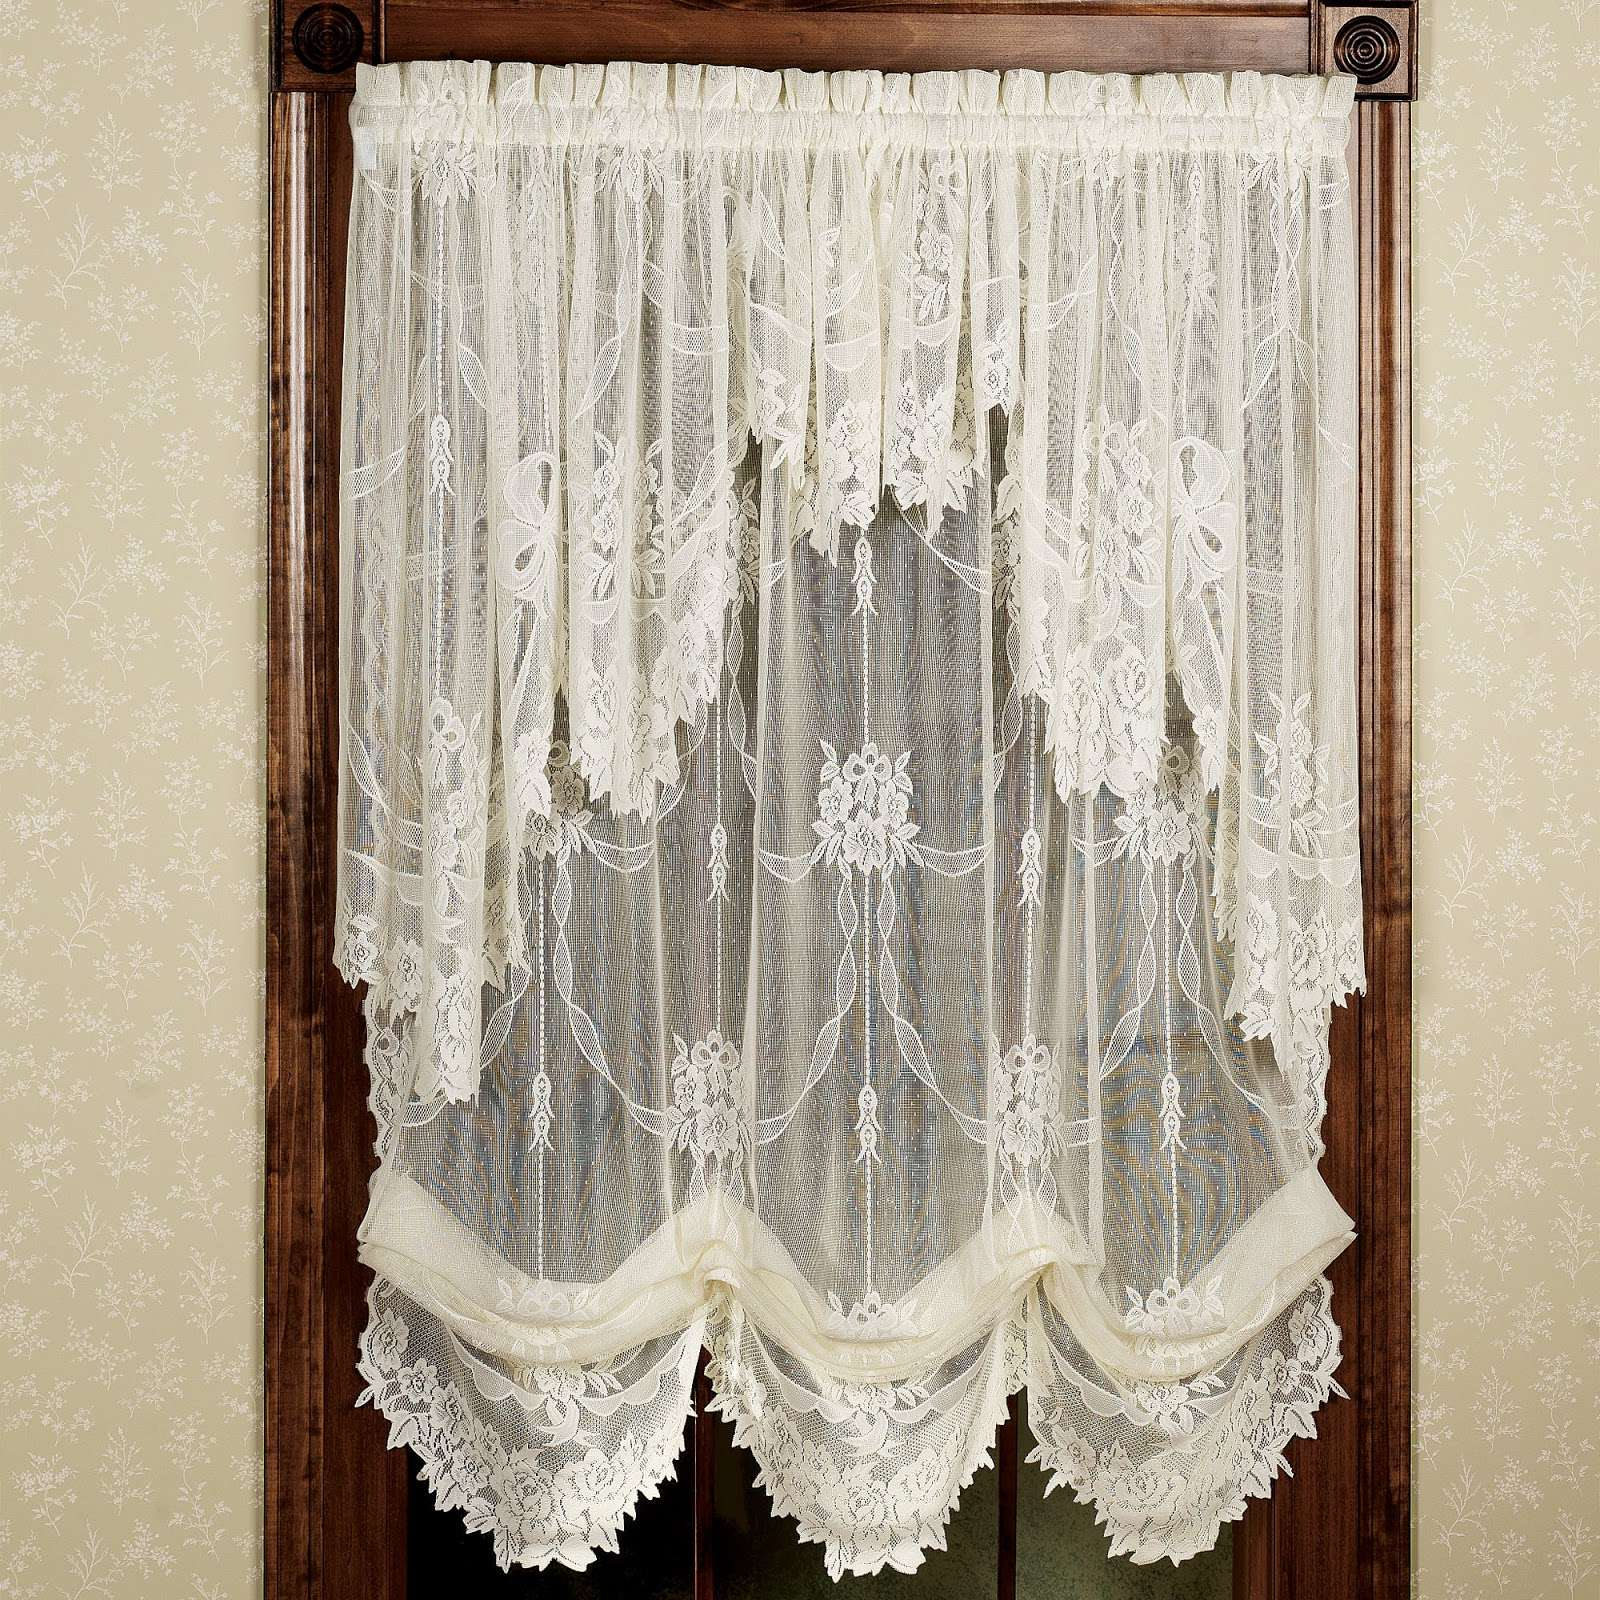 Latest Pretty Country Lace Curtains Swags For Living Room Catalog With Regard To Country Style Curtain Parts With White Daisy Lace Accent (Gallery 18 of 20)